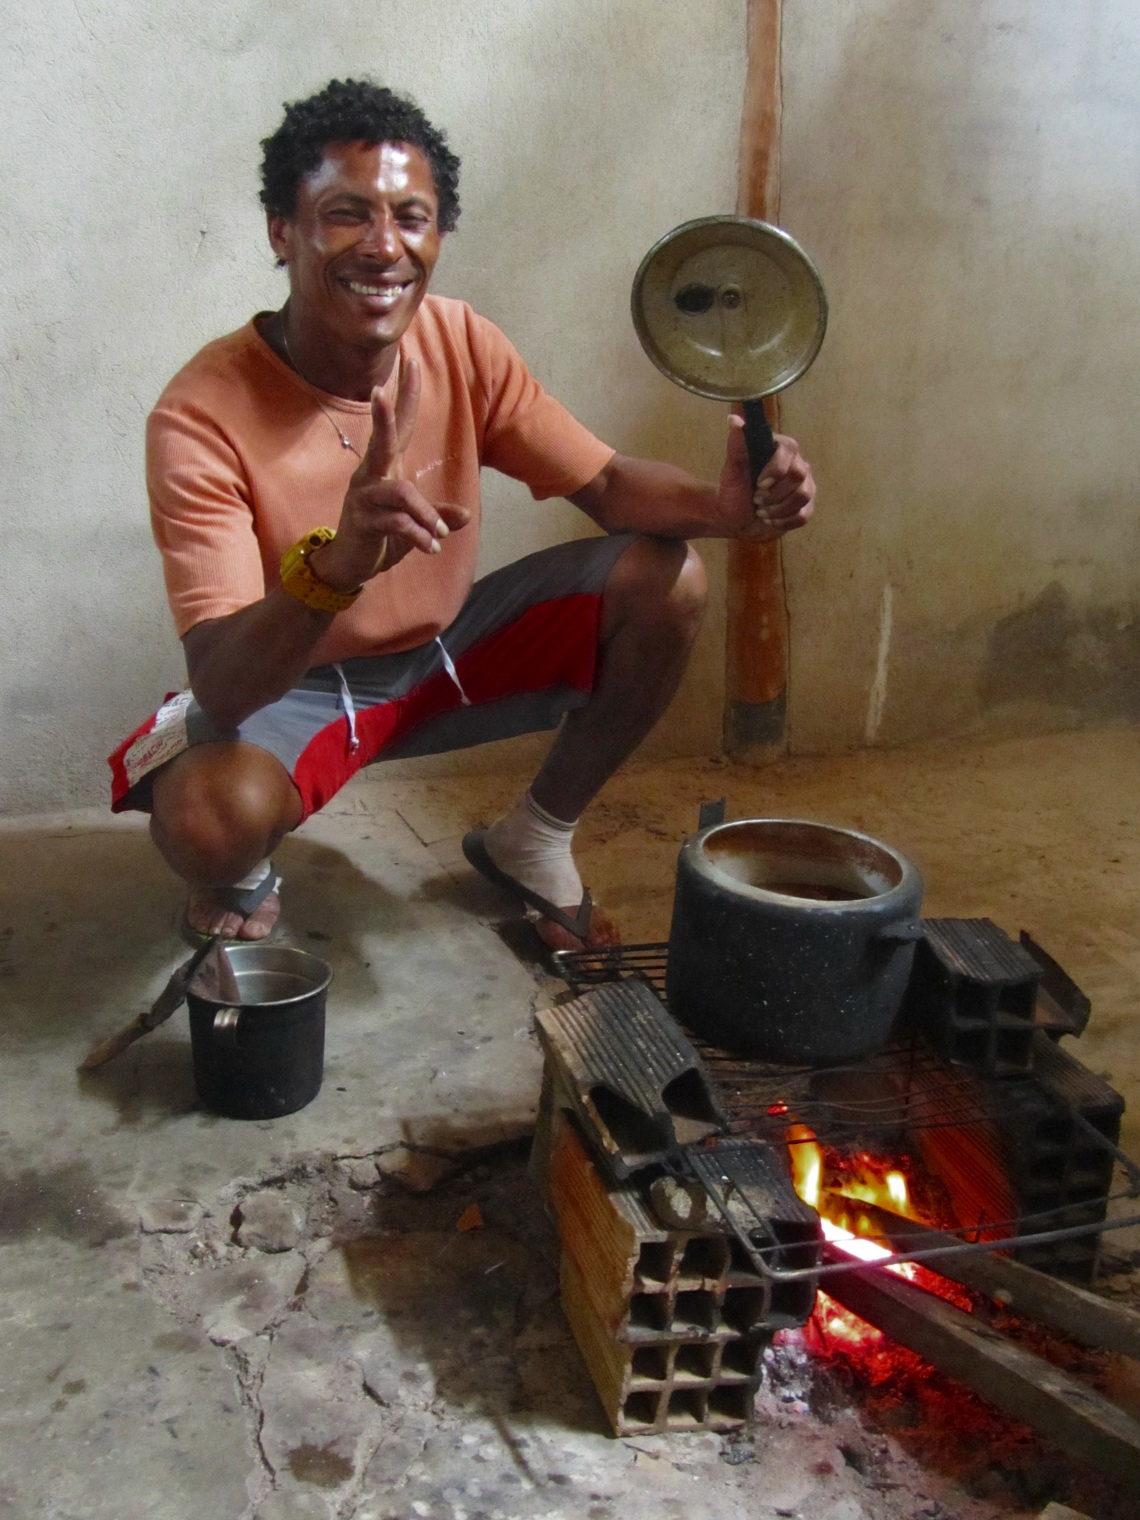 Our proud chef showing the delicious chicken stew on his stove